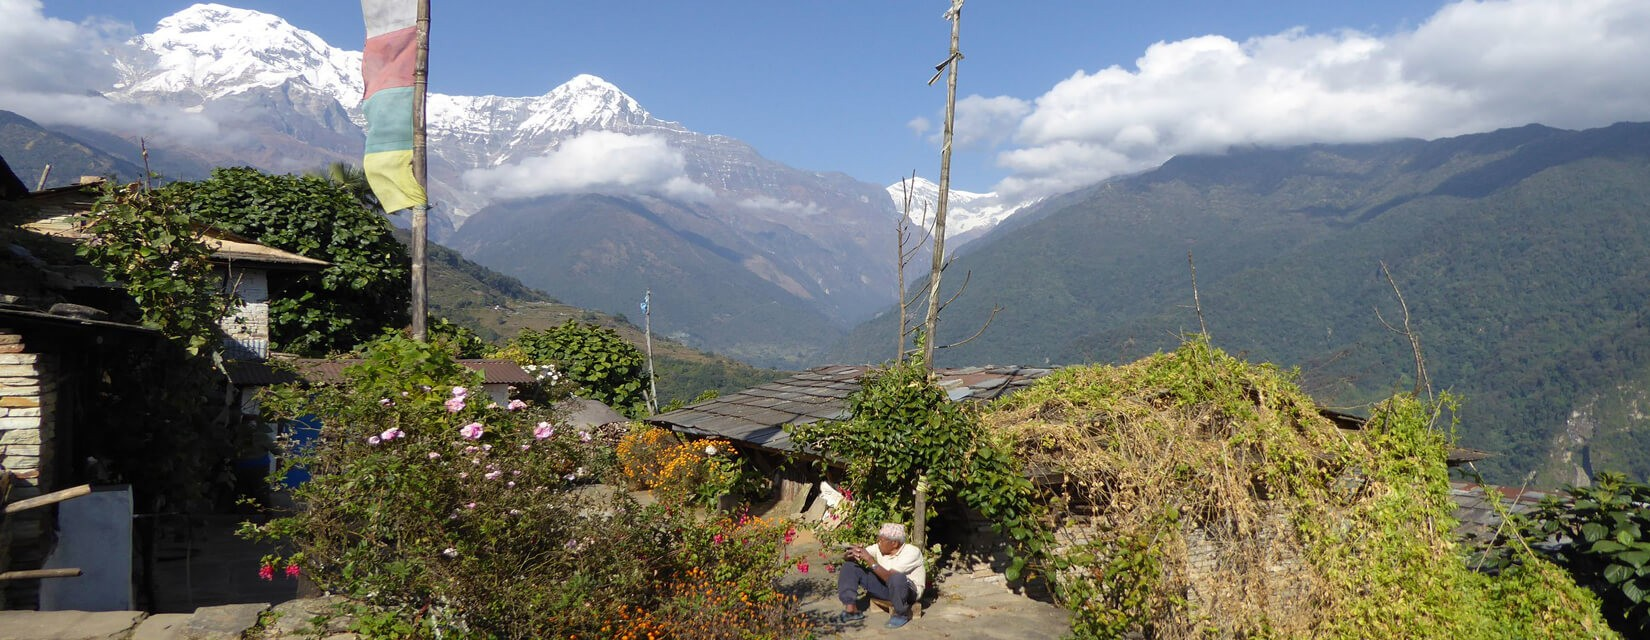 Himalaya view from Ghandruk